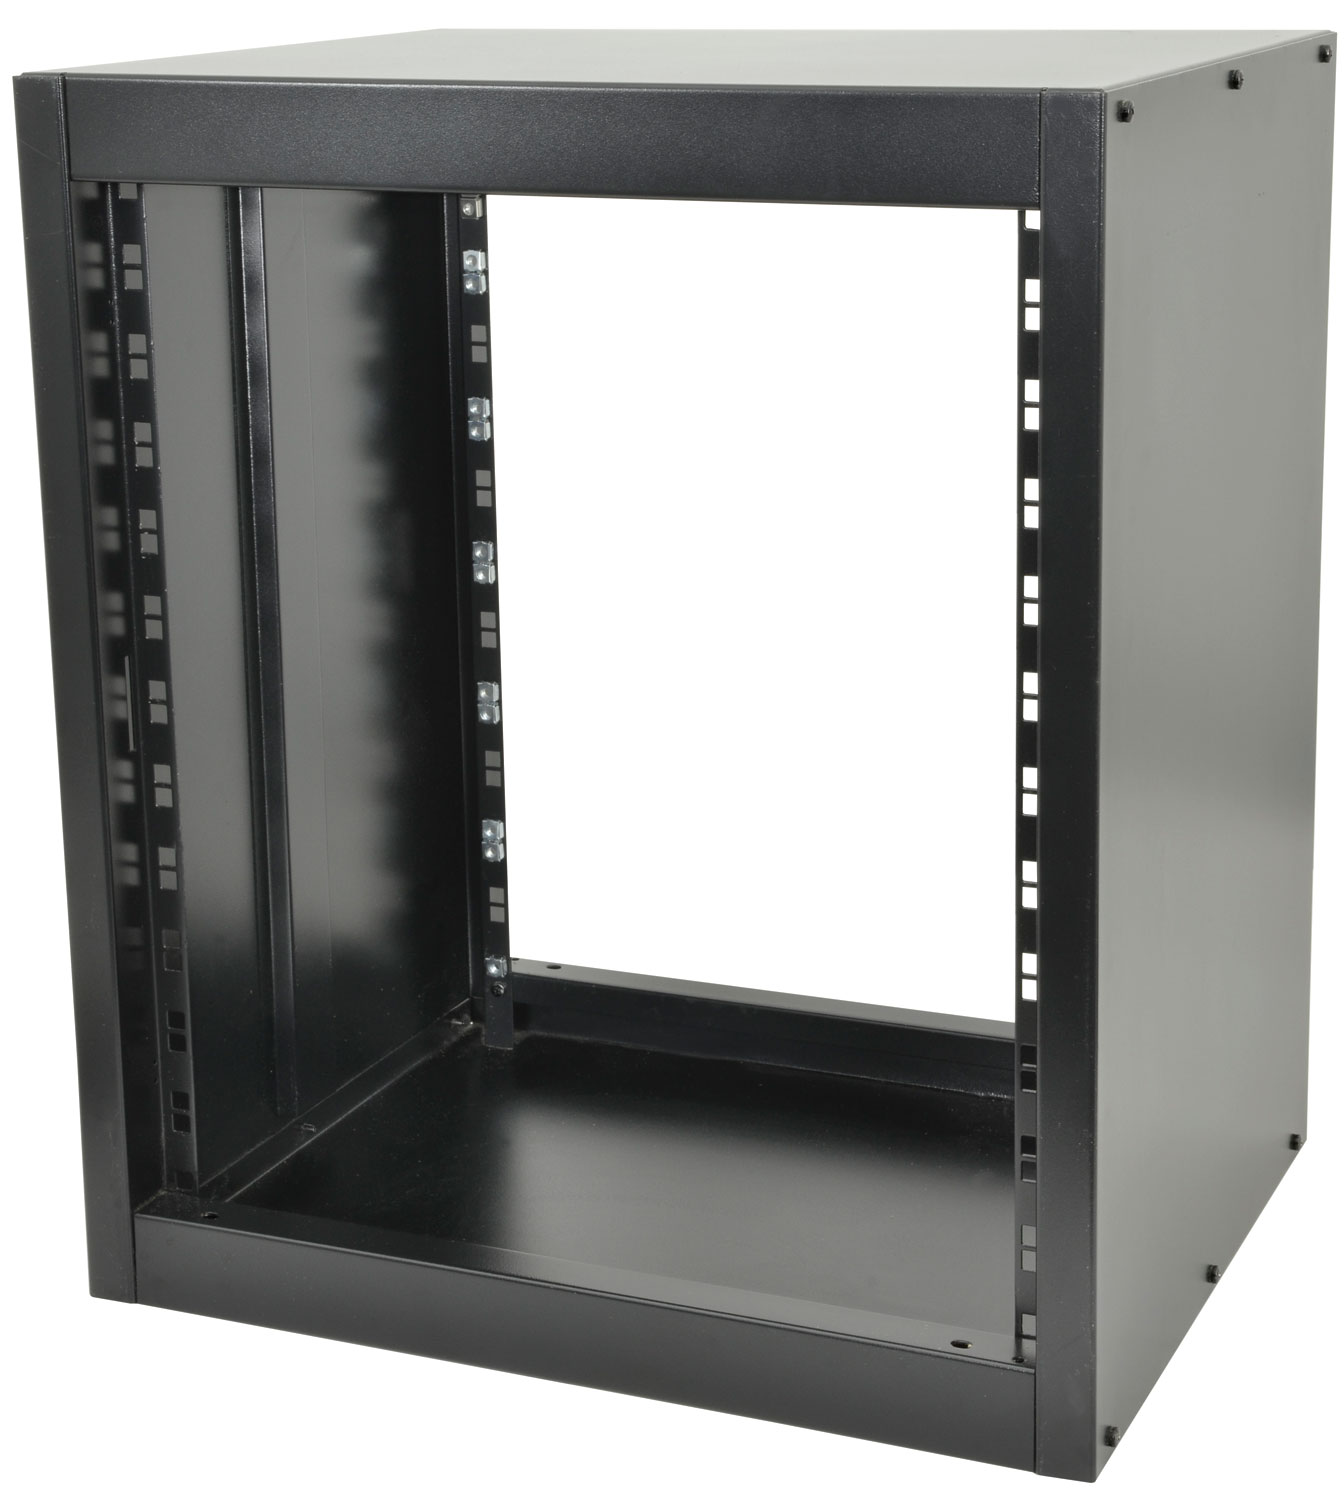 952551 Complete rack 435mm - 6U